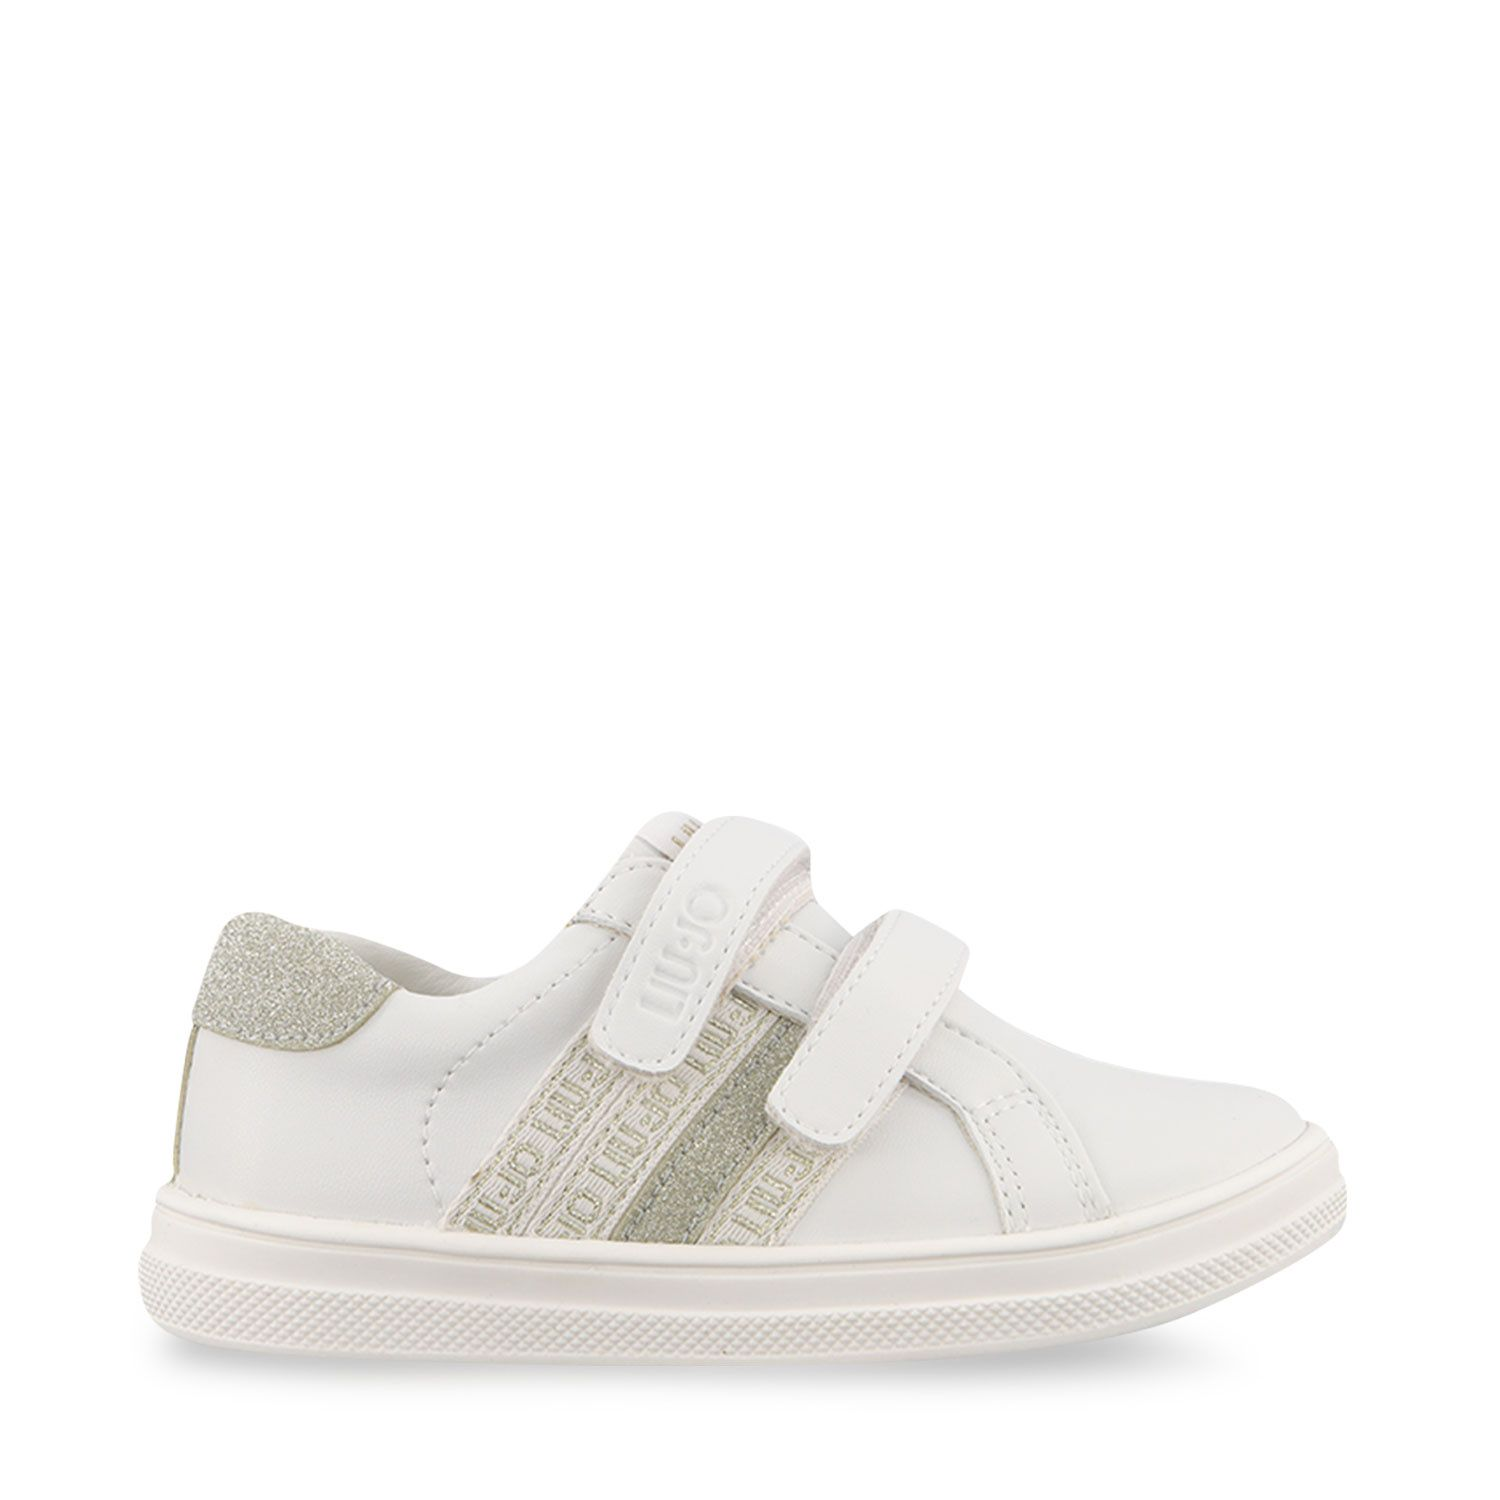 Picture of Liu Jo 4A1307 kids sneakers white